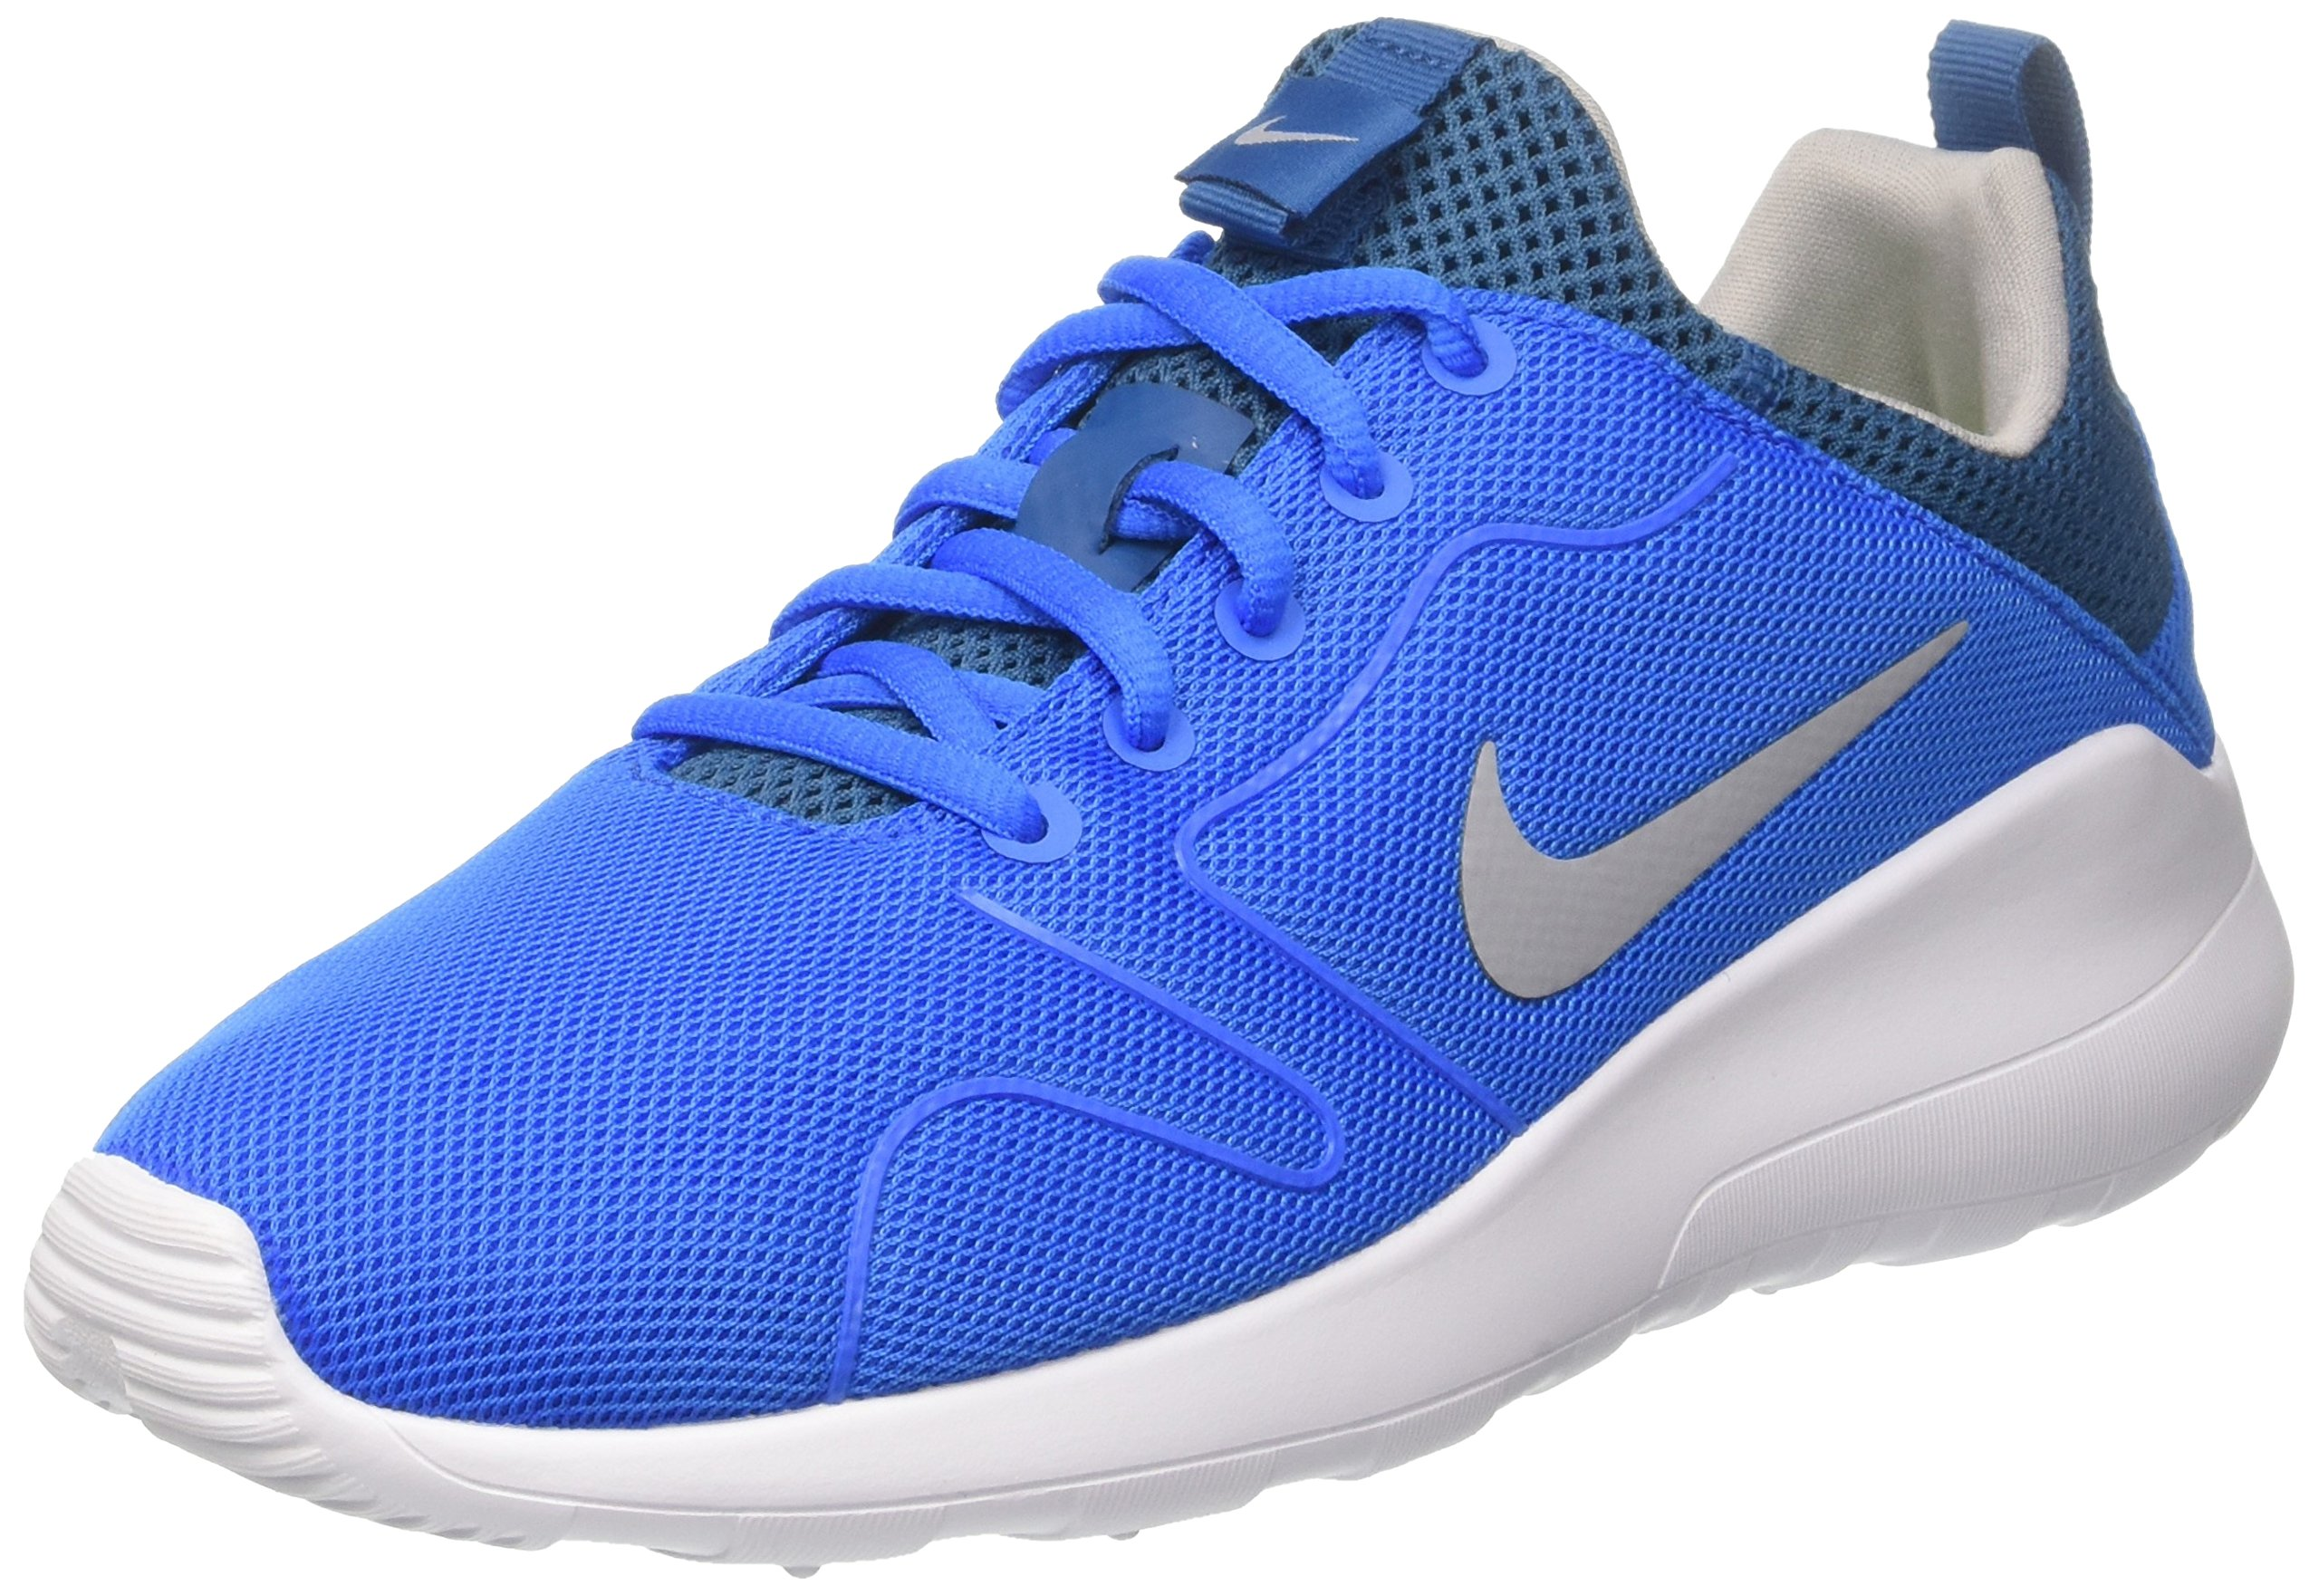 best website f0b5c 34596 Galleon - Nike Men s Kaishi 2.0 Low-Top Sneakers, Blue (Photo Blue Wolf  Grey Industrial Blue), 9 UK